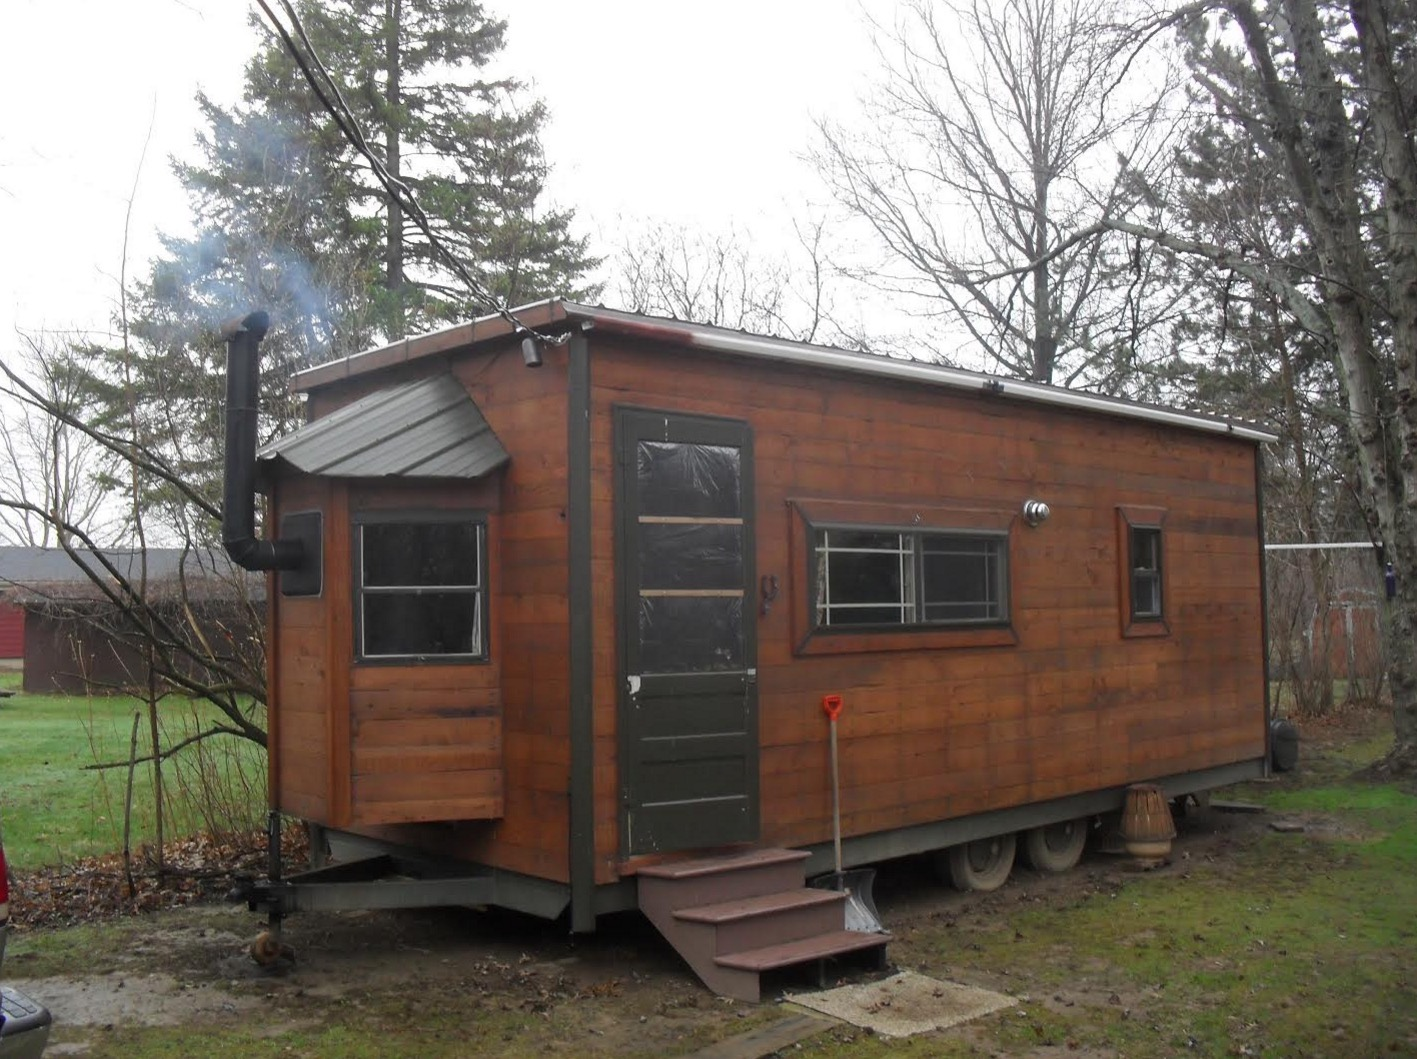 Kerry's $12k Tiny House On Wheels (For Sale